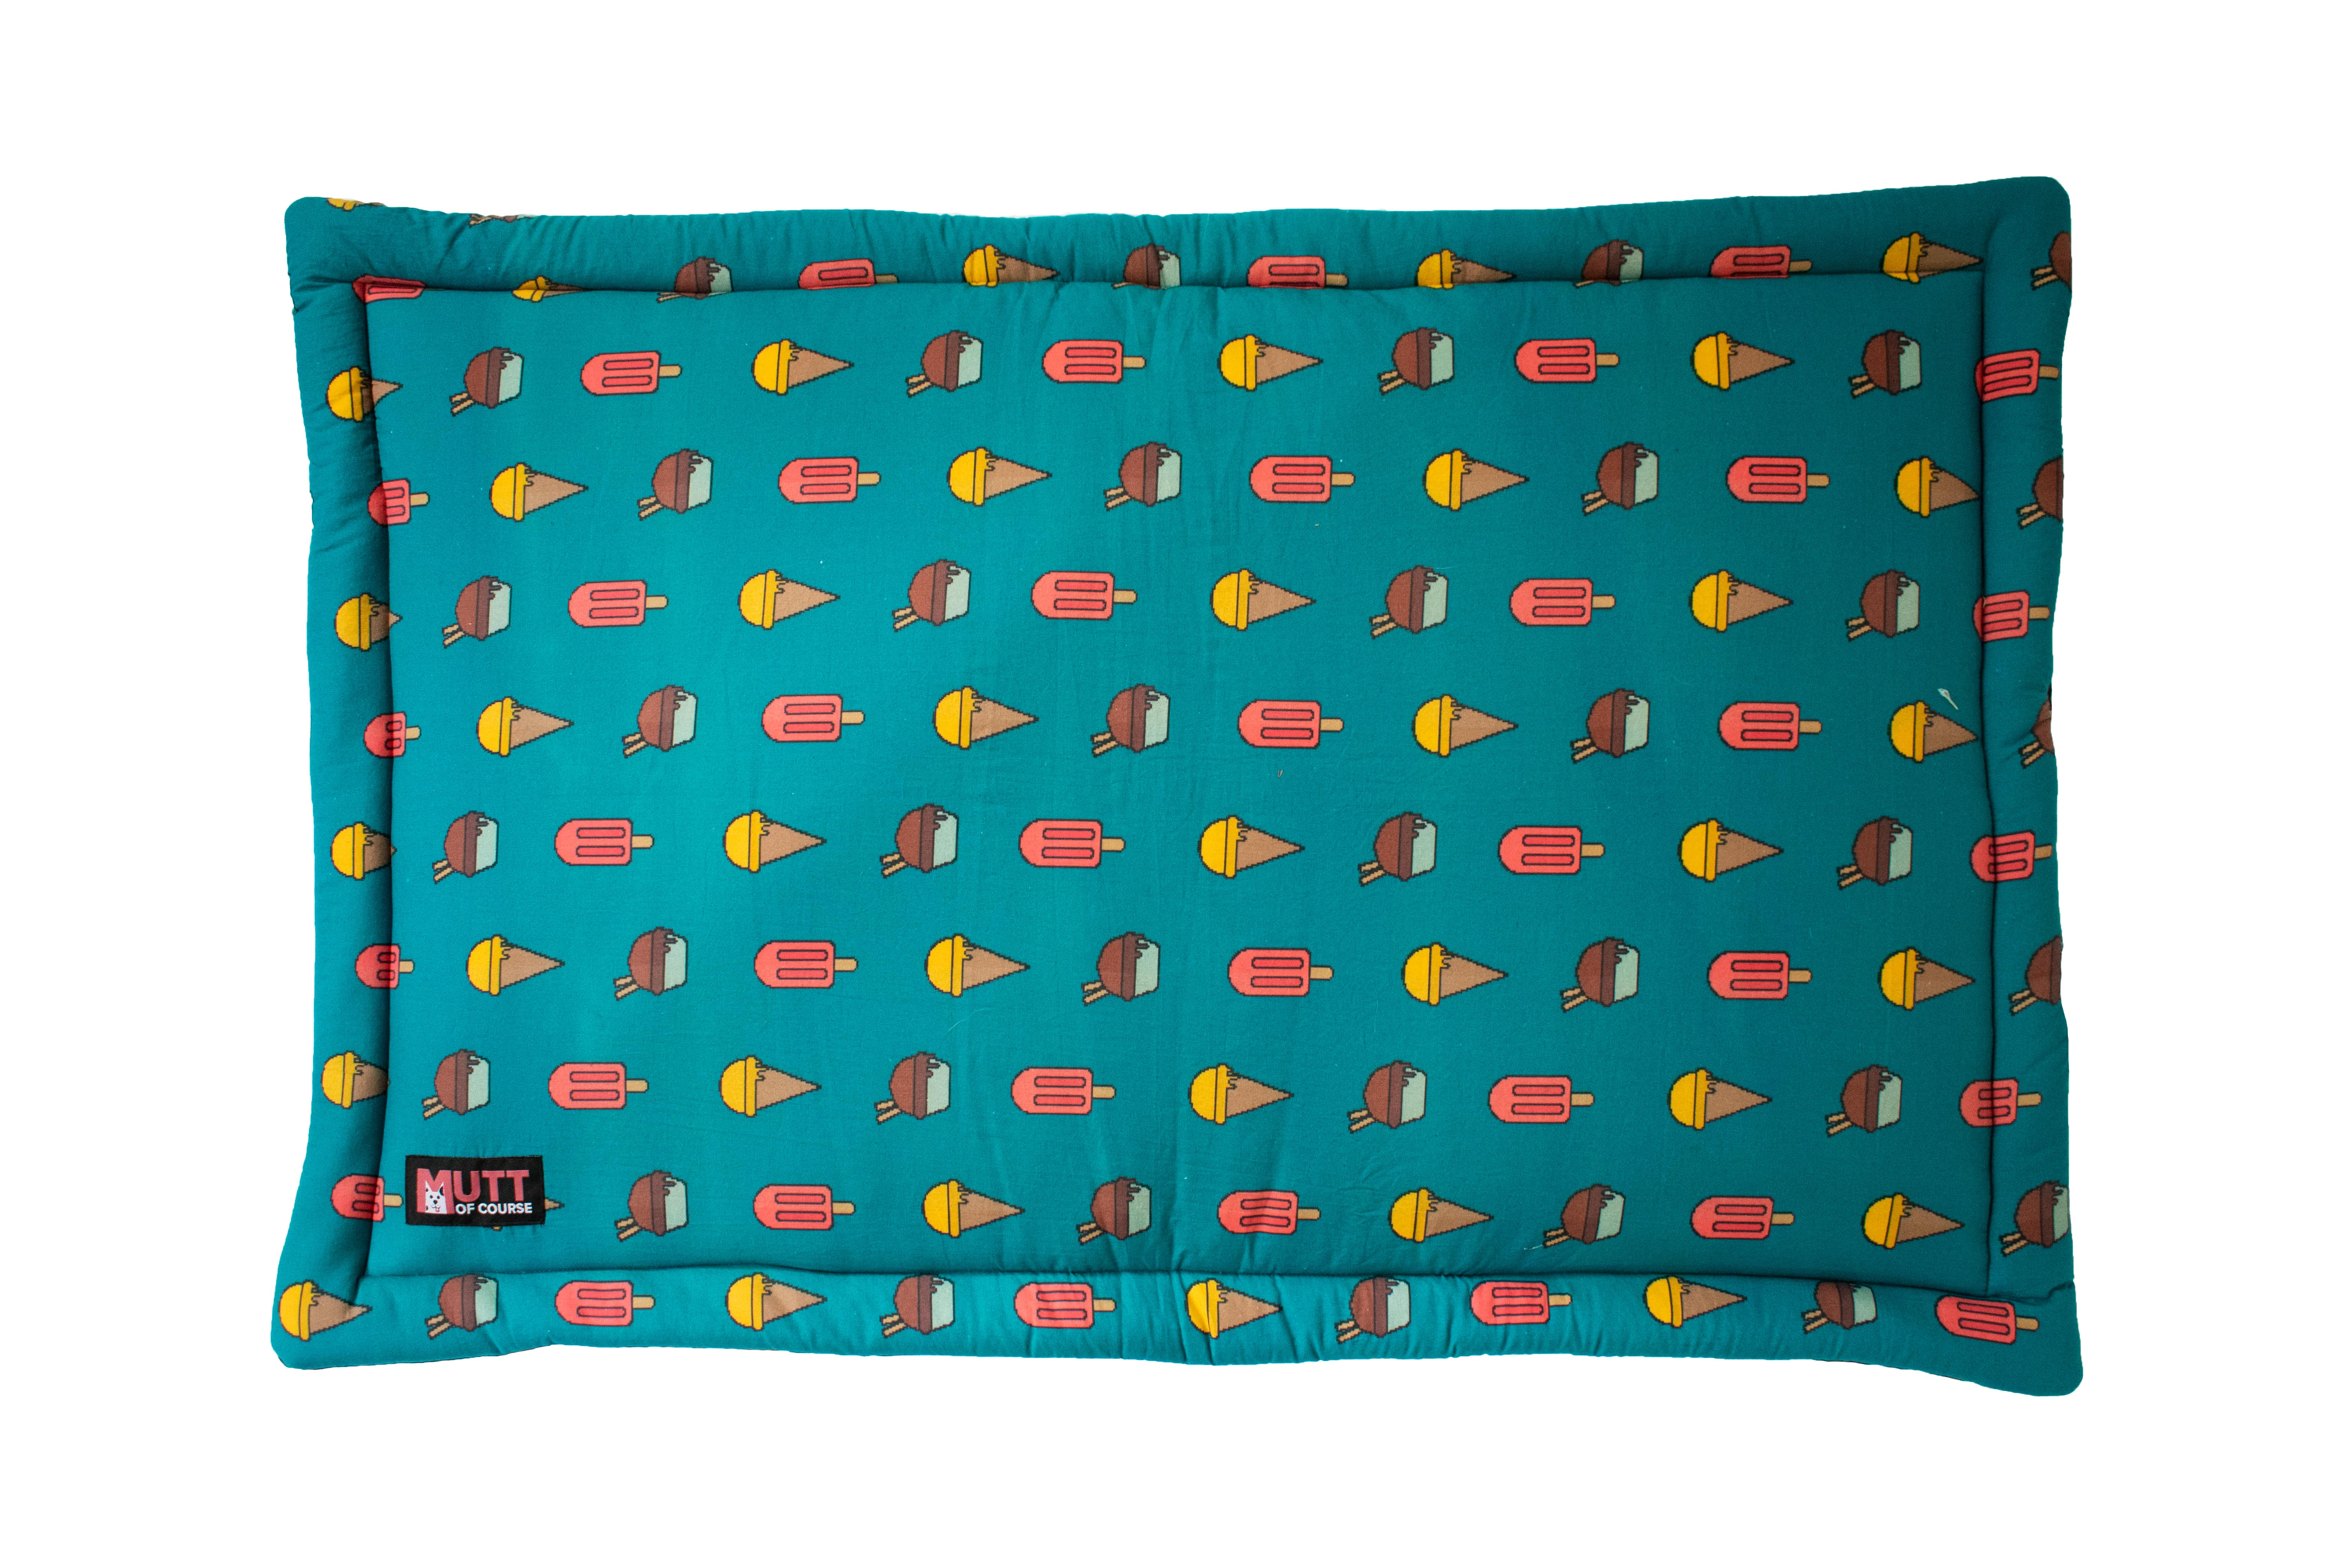 Mutt Of Course Pupsicles Mat - Large